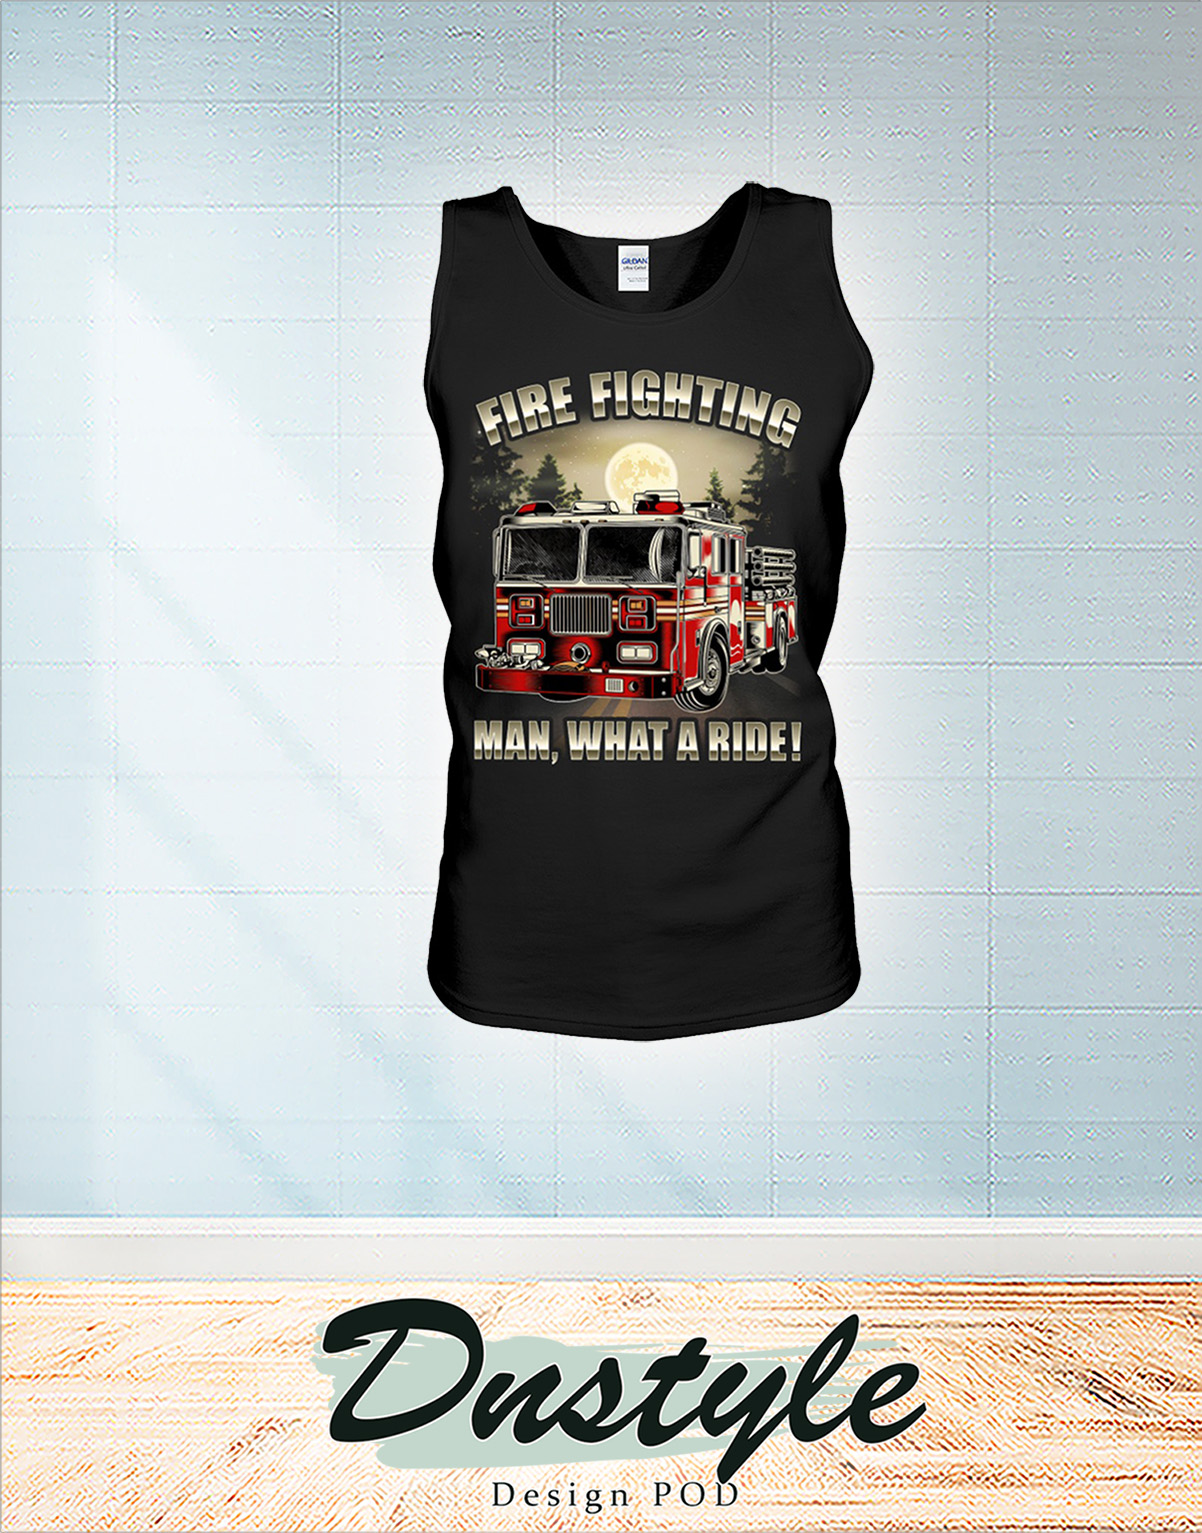 Fire fighting man what a ride tank